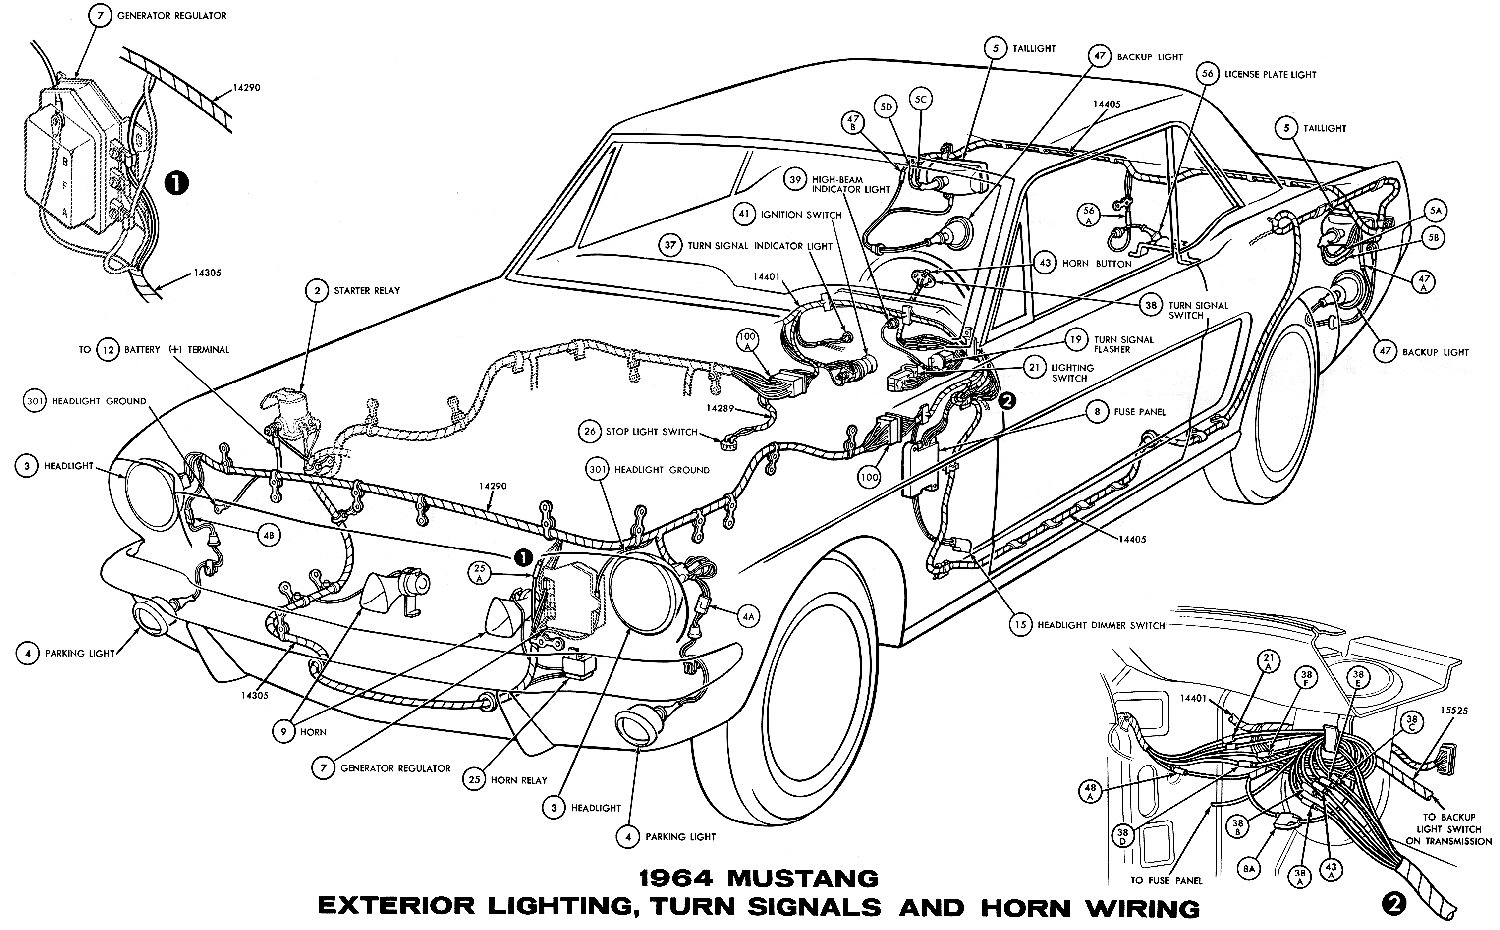 1964h 1964 mustang wiring diagrams average joe restoration 65 mustang tail light wiring diagram at crackthecode.co